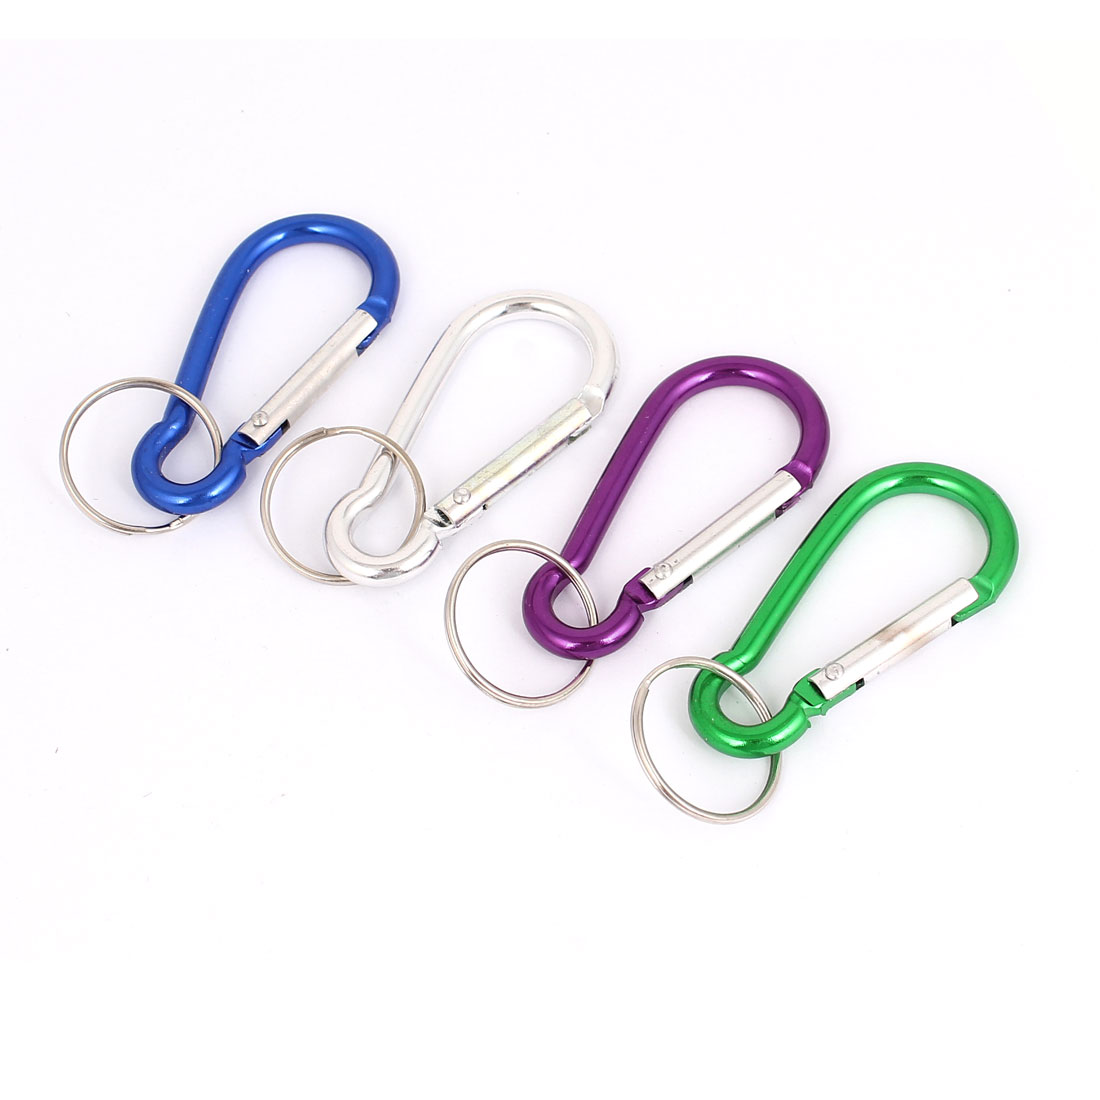 Carabiner Clip Hook Split Ring Keychain Keyring Key Holder 4Pcs